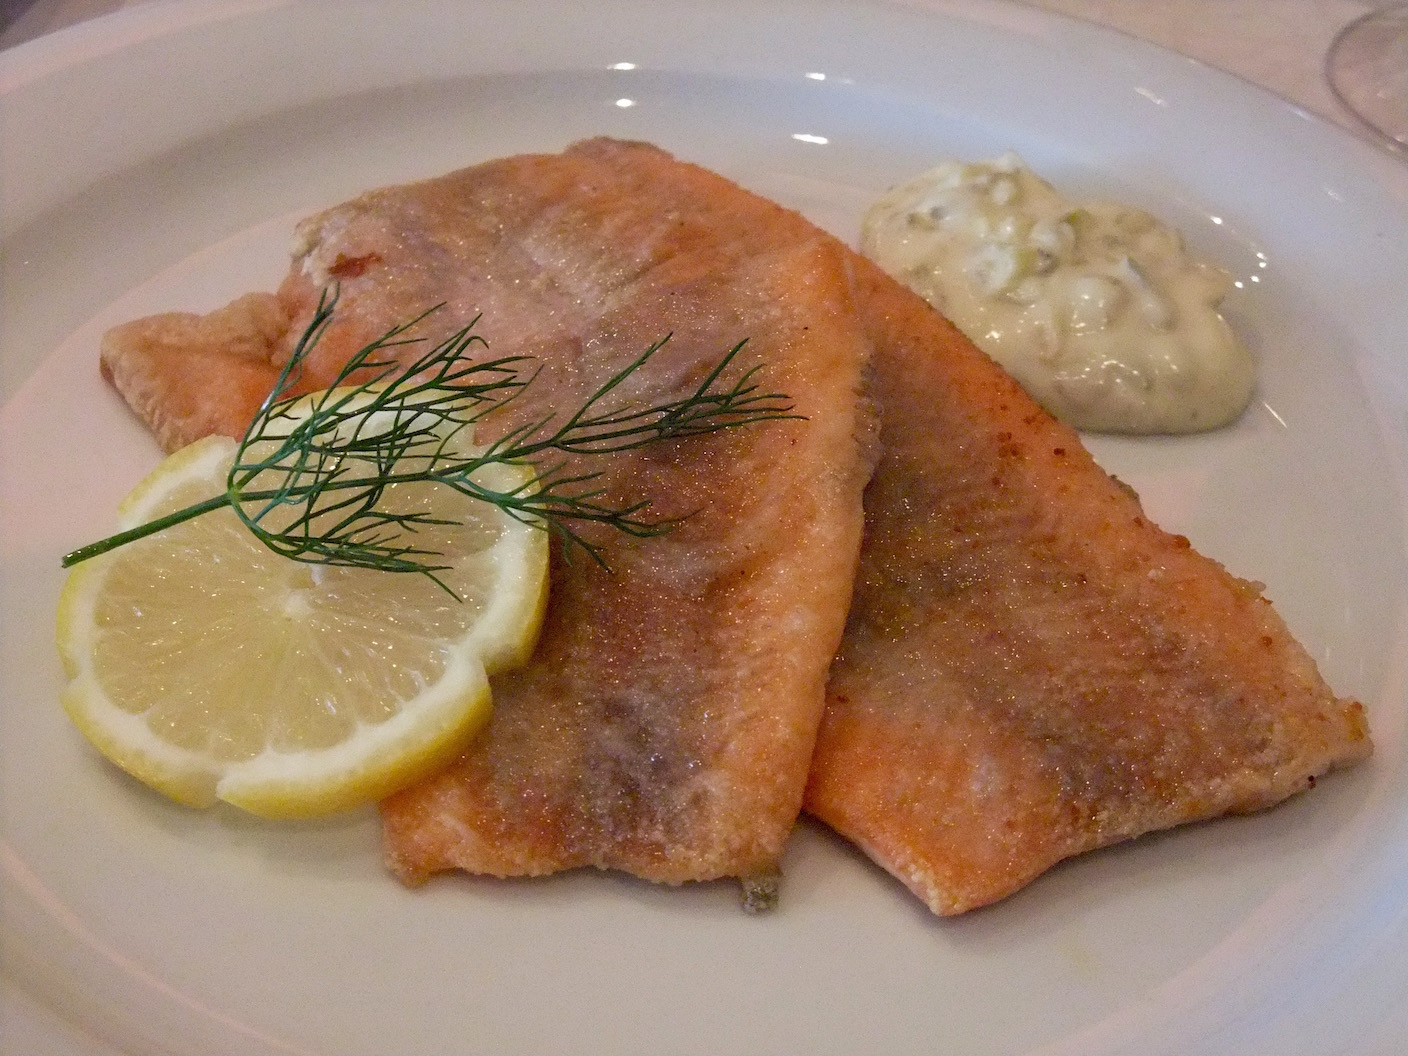 My pan-fried trout with a homemade remoulade